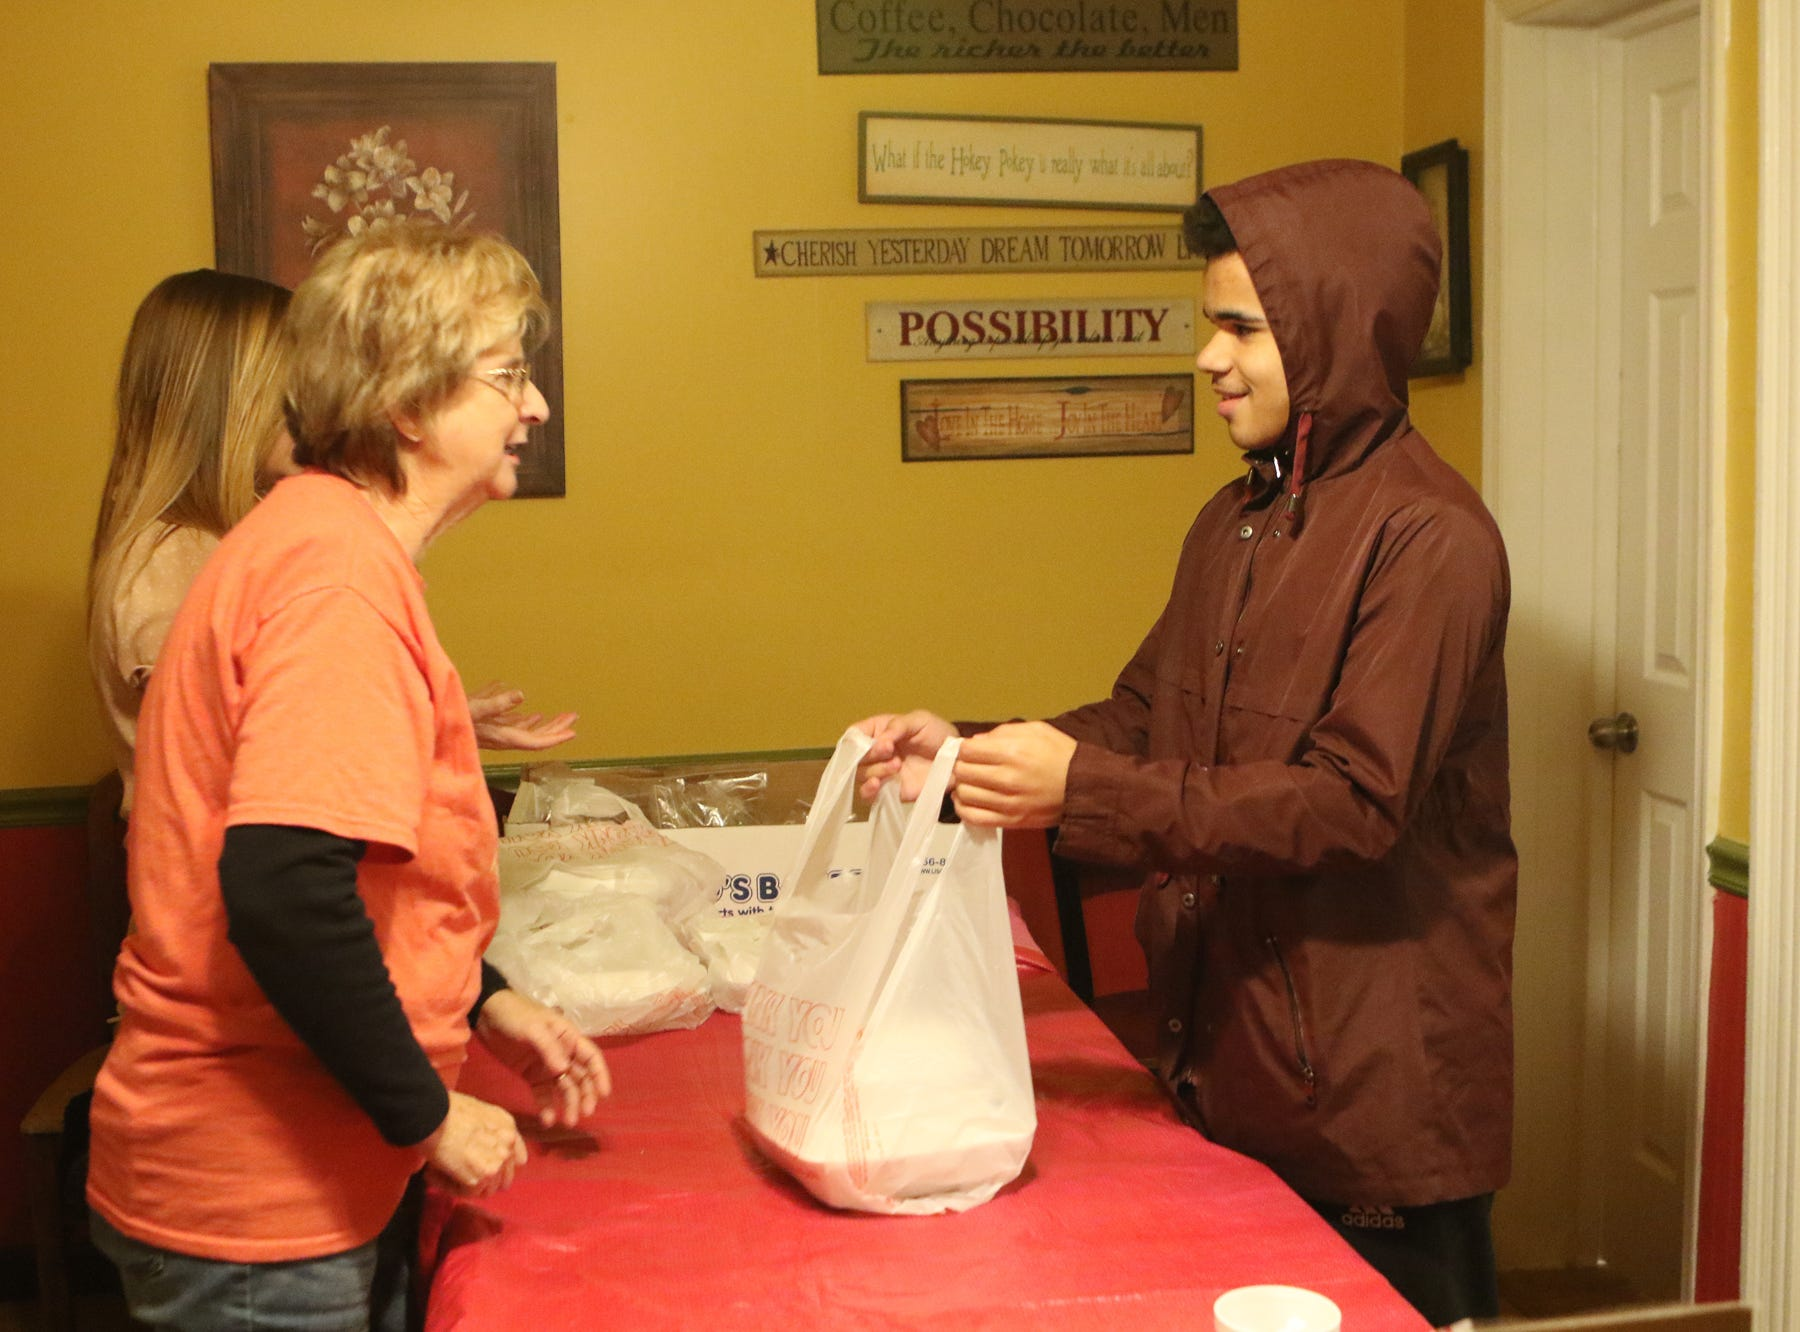 The owners, employees and their children at Simaron Pizza & Steak Shop in Dover opened up the restaurant on Thanksgiving Day to feed those who couldn't afford dinner or who were alone on the holiday.